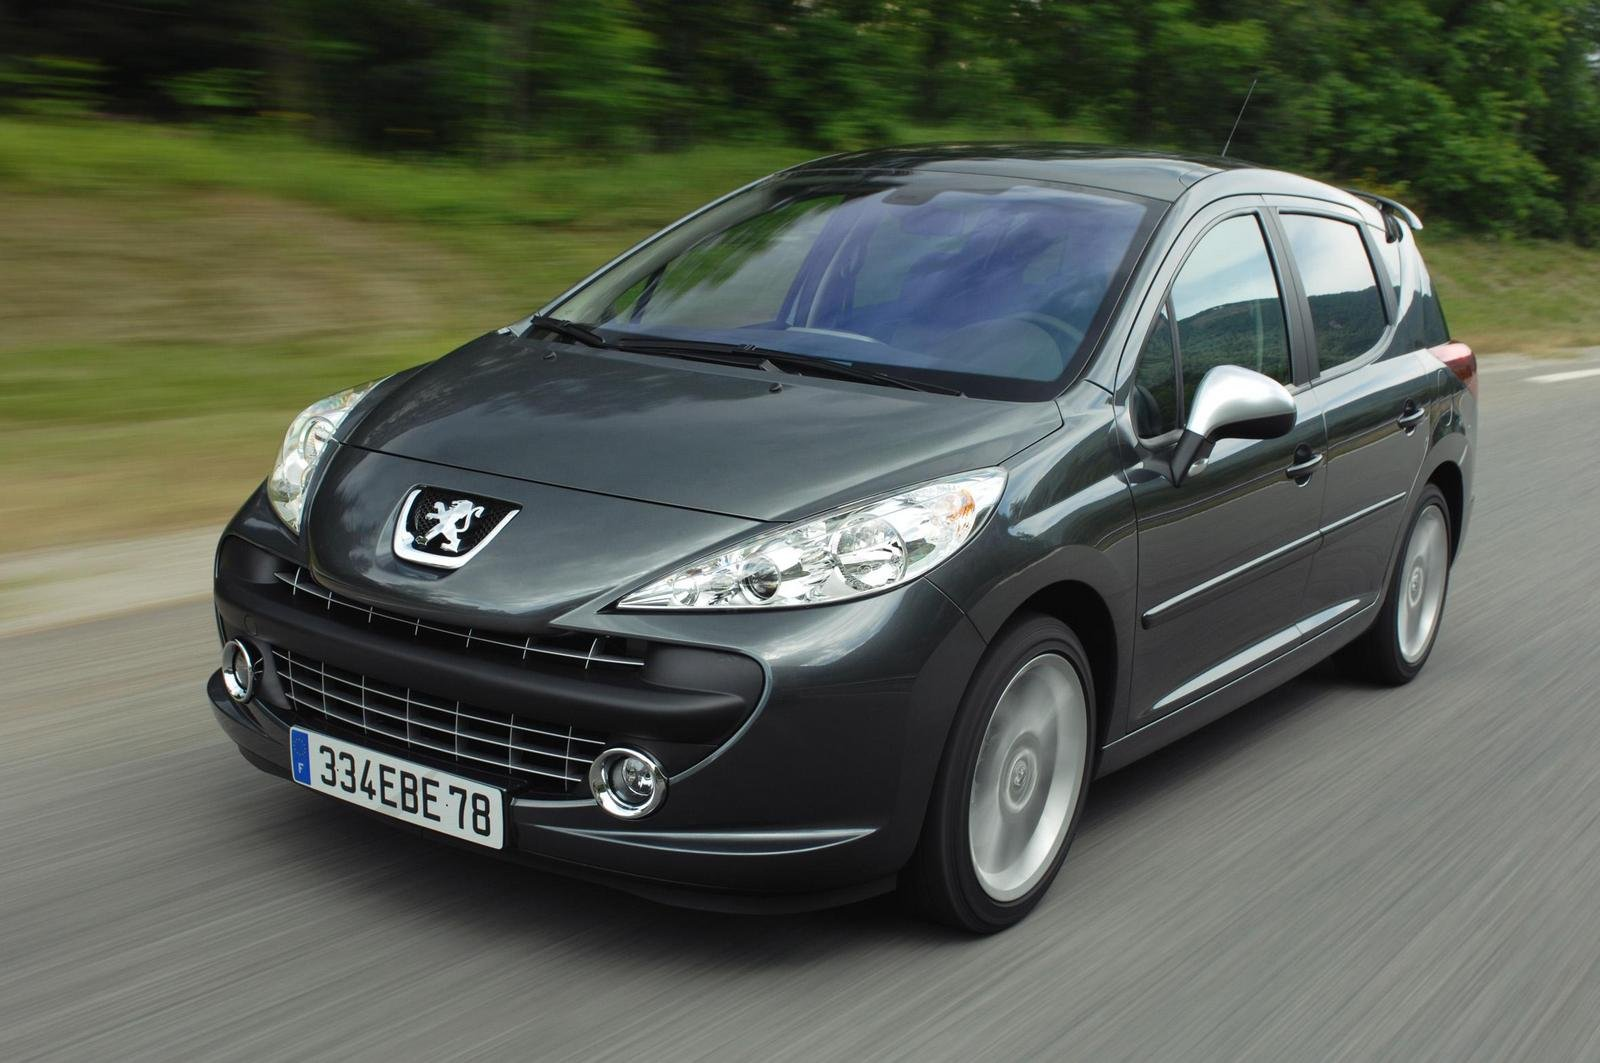 2007 peugeot 207 sw rc picture 195237 car review top. Black Bedroom Furniture Sets. Home Design Ideas